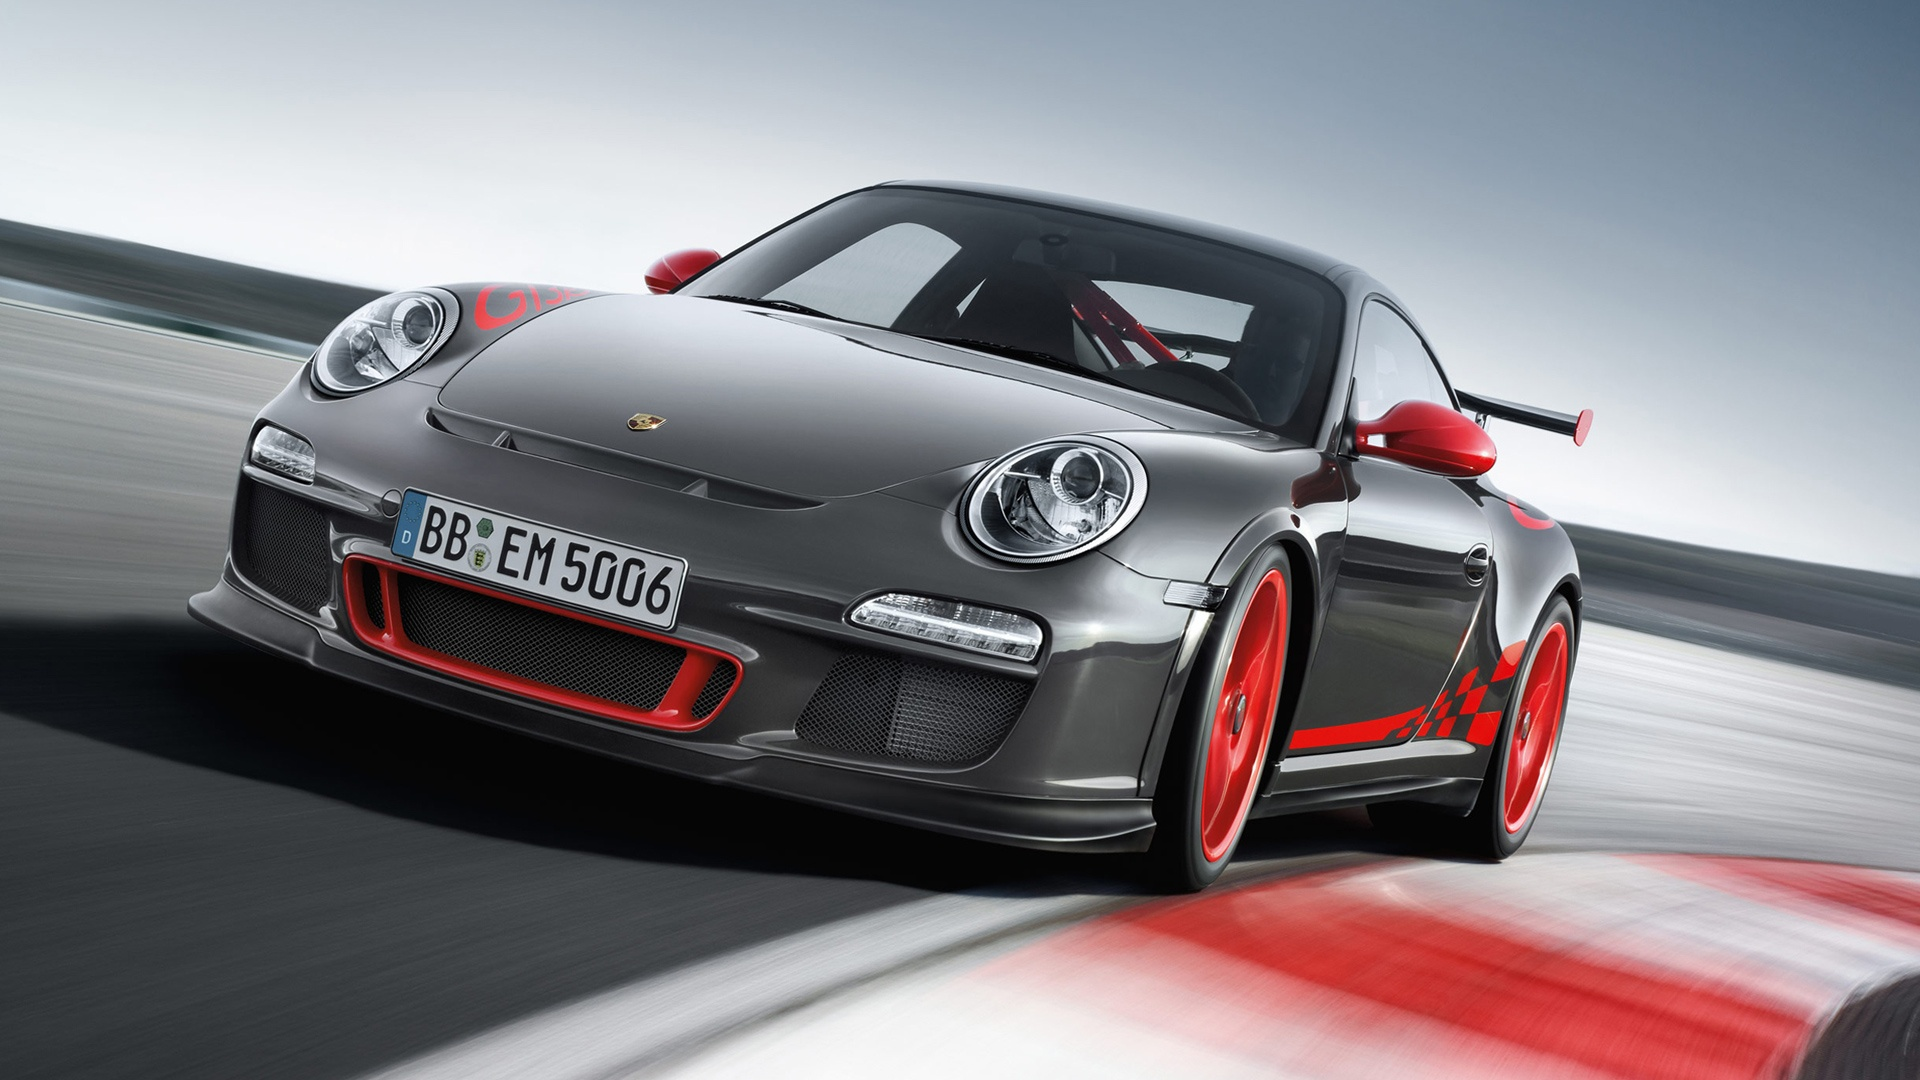 Porsche 911 Car 2013 Wallpaper 1920x1080